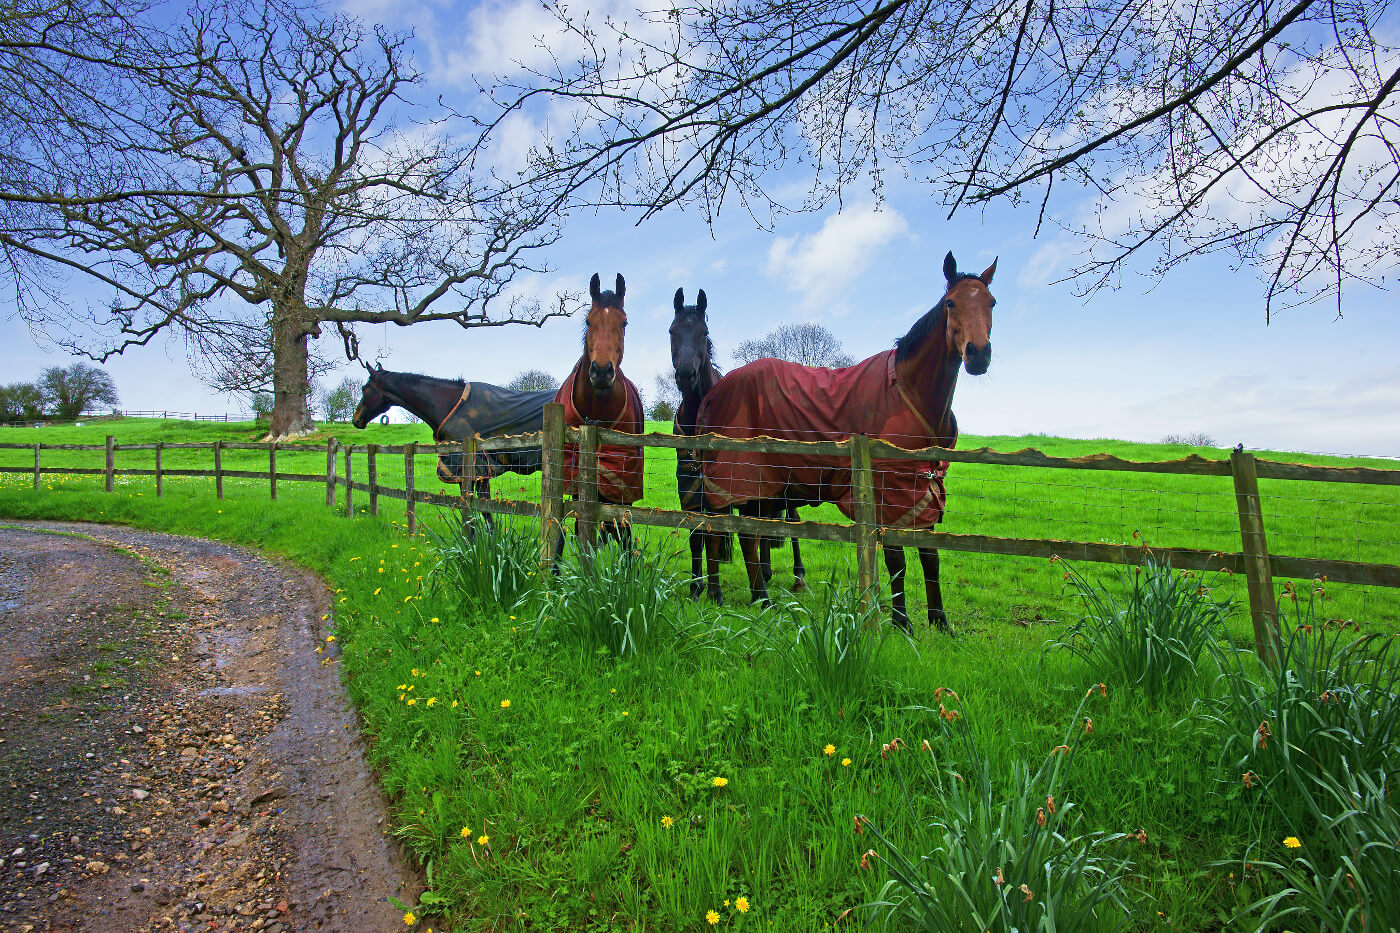 Four horses stood in a field in the Cotswolds